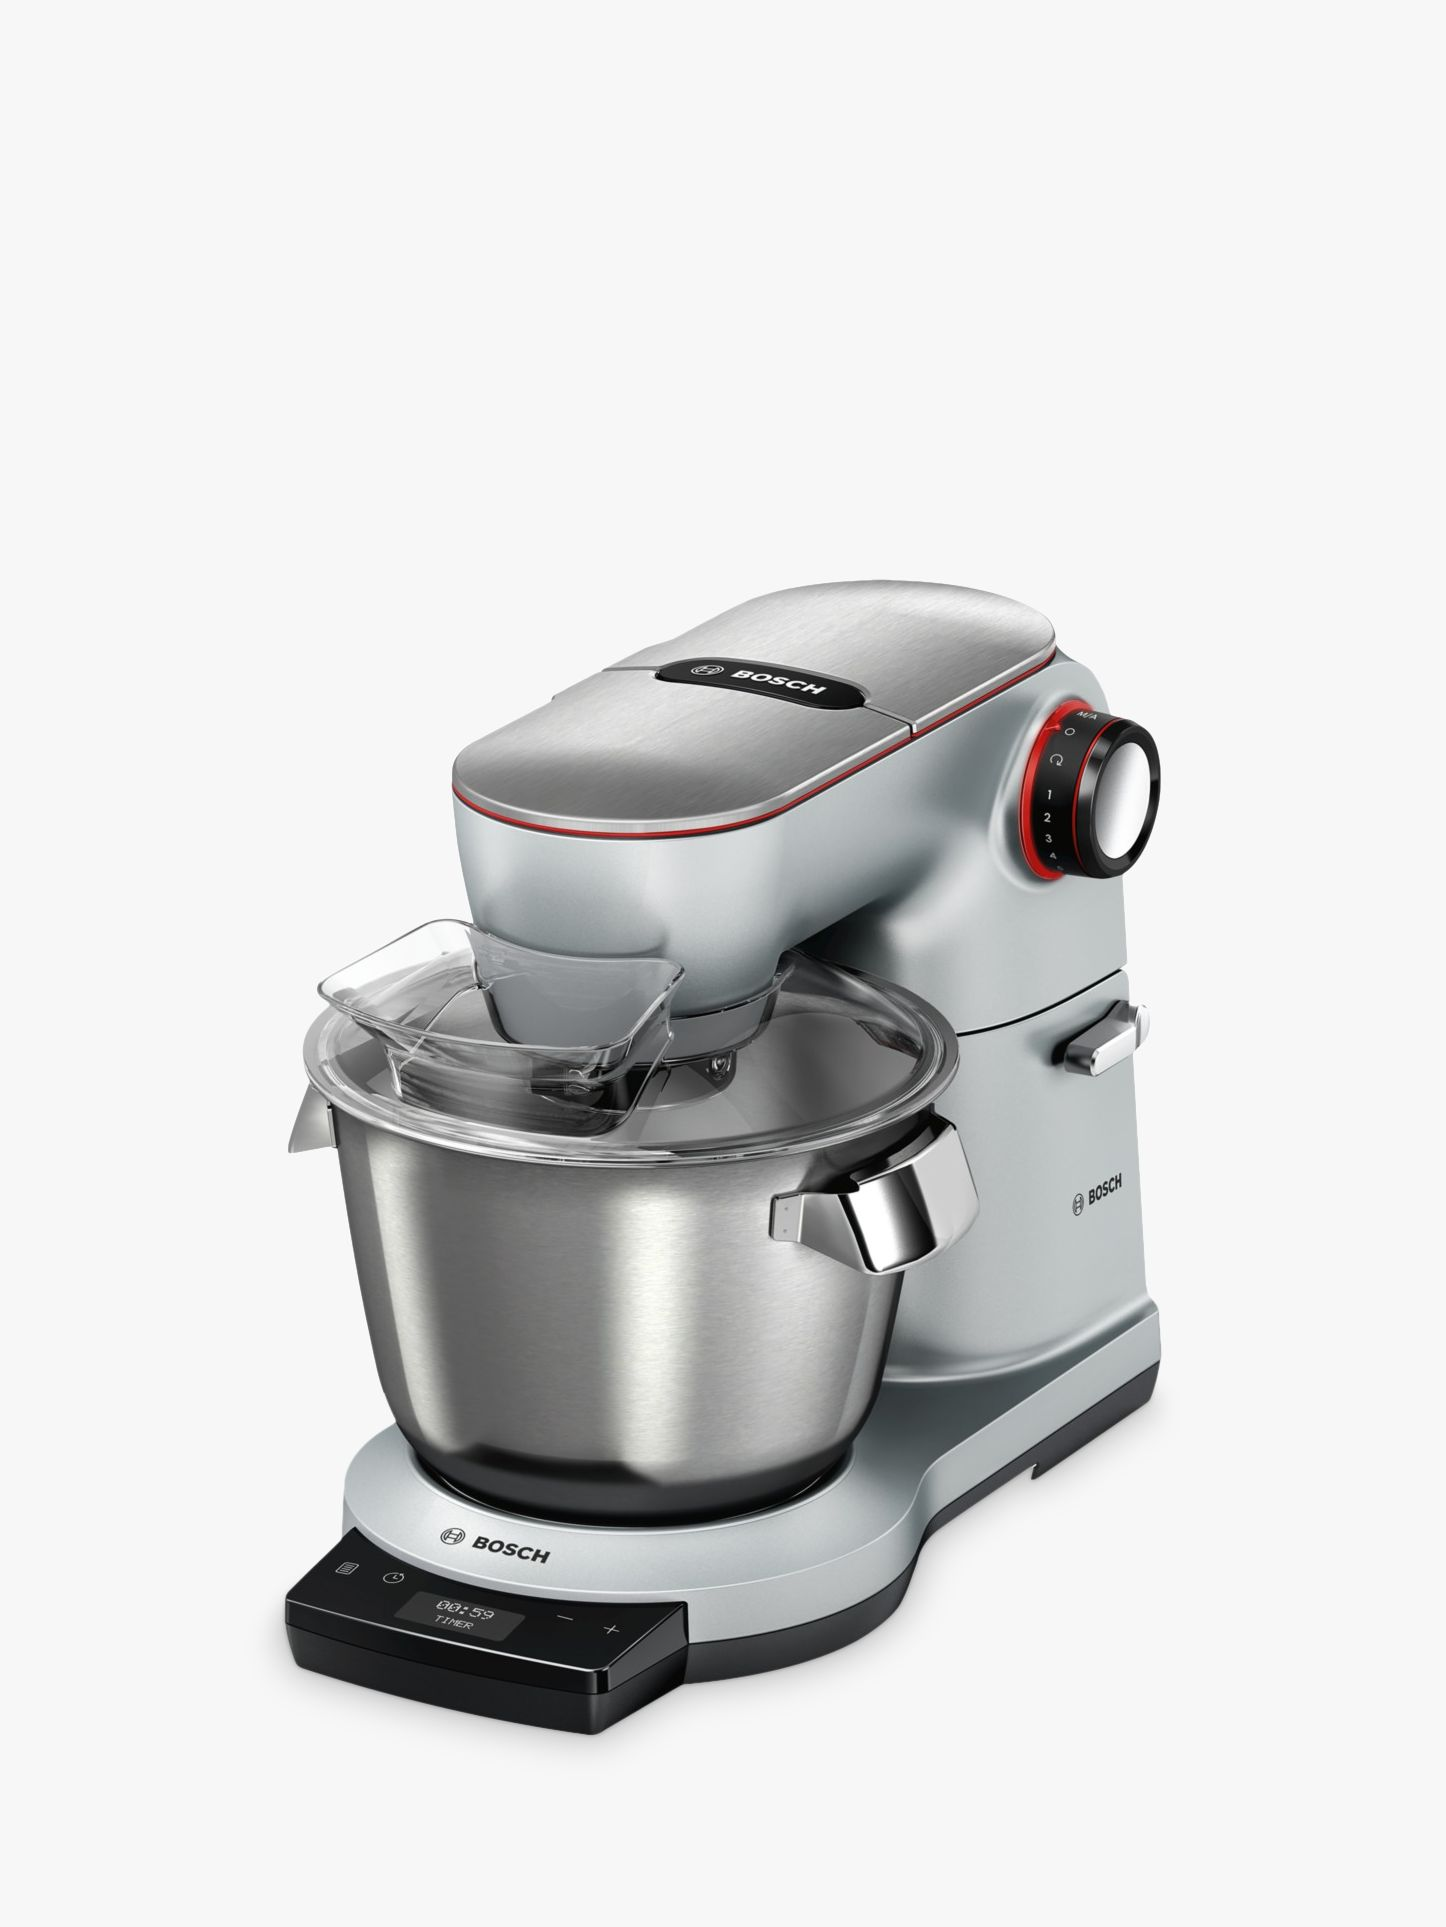 Bosch Blender Bosch Mum9gx5s21 Optimum Kitchen Machine Food Mixer With